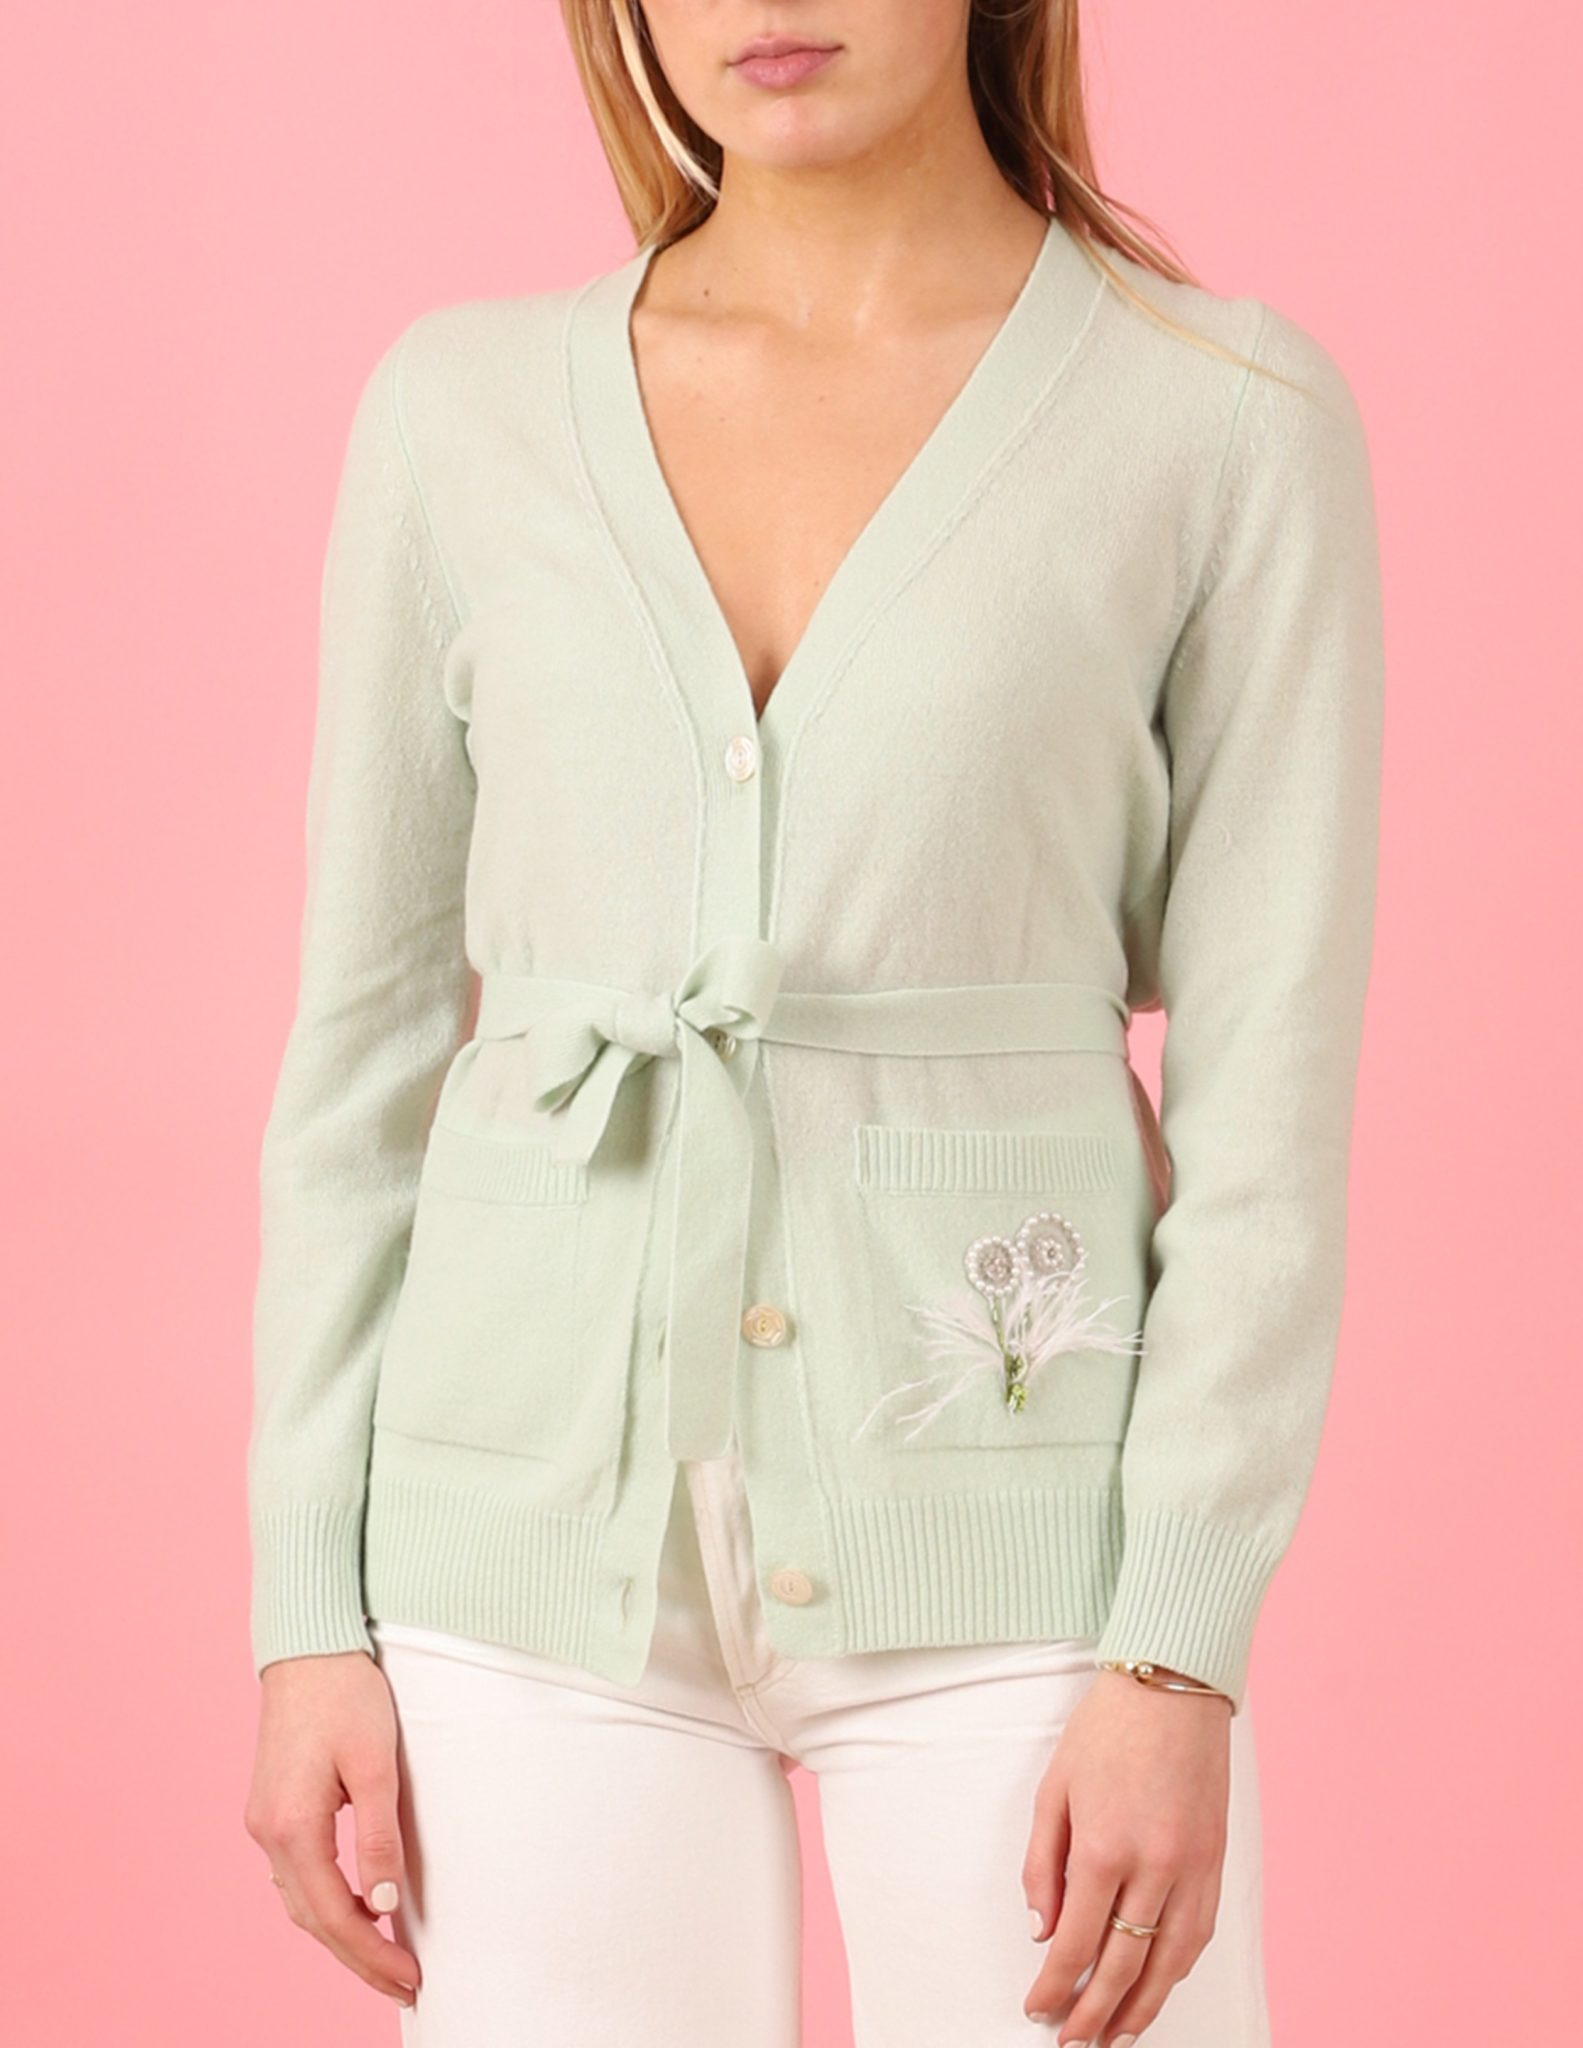 Where To Buy Unique Sweaters: Le Lion Alexandra Belted Cardigan | Rhyme & Reason